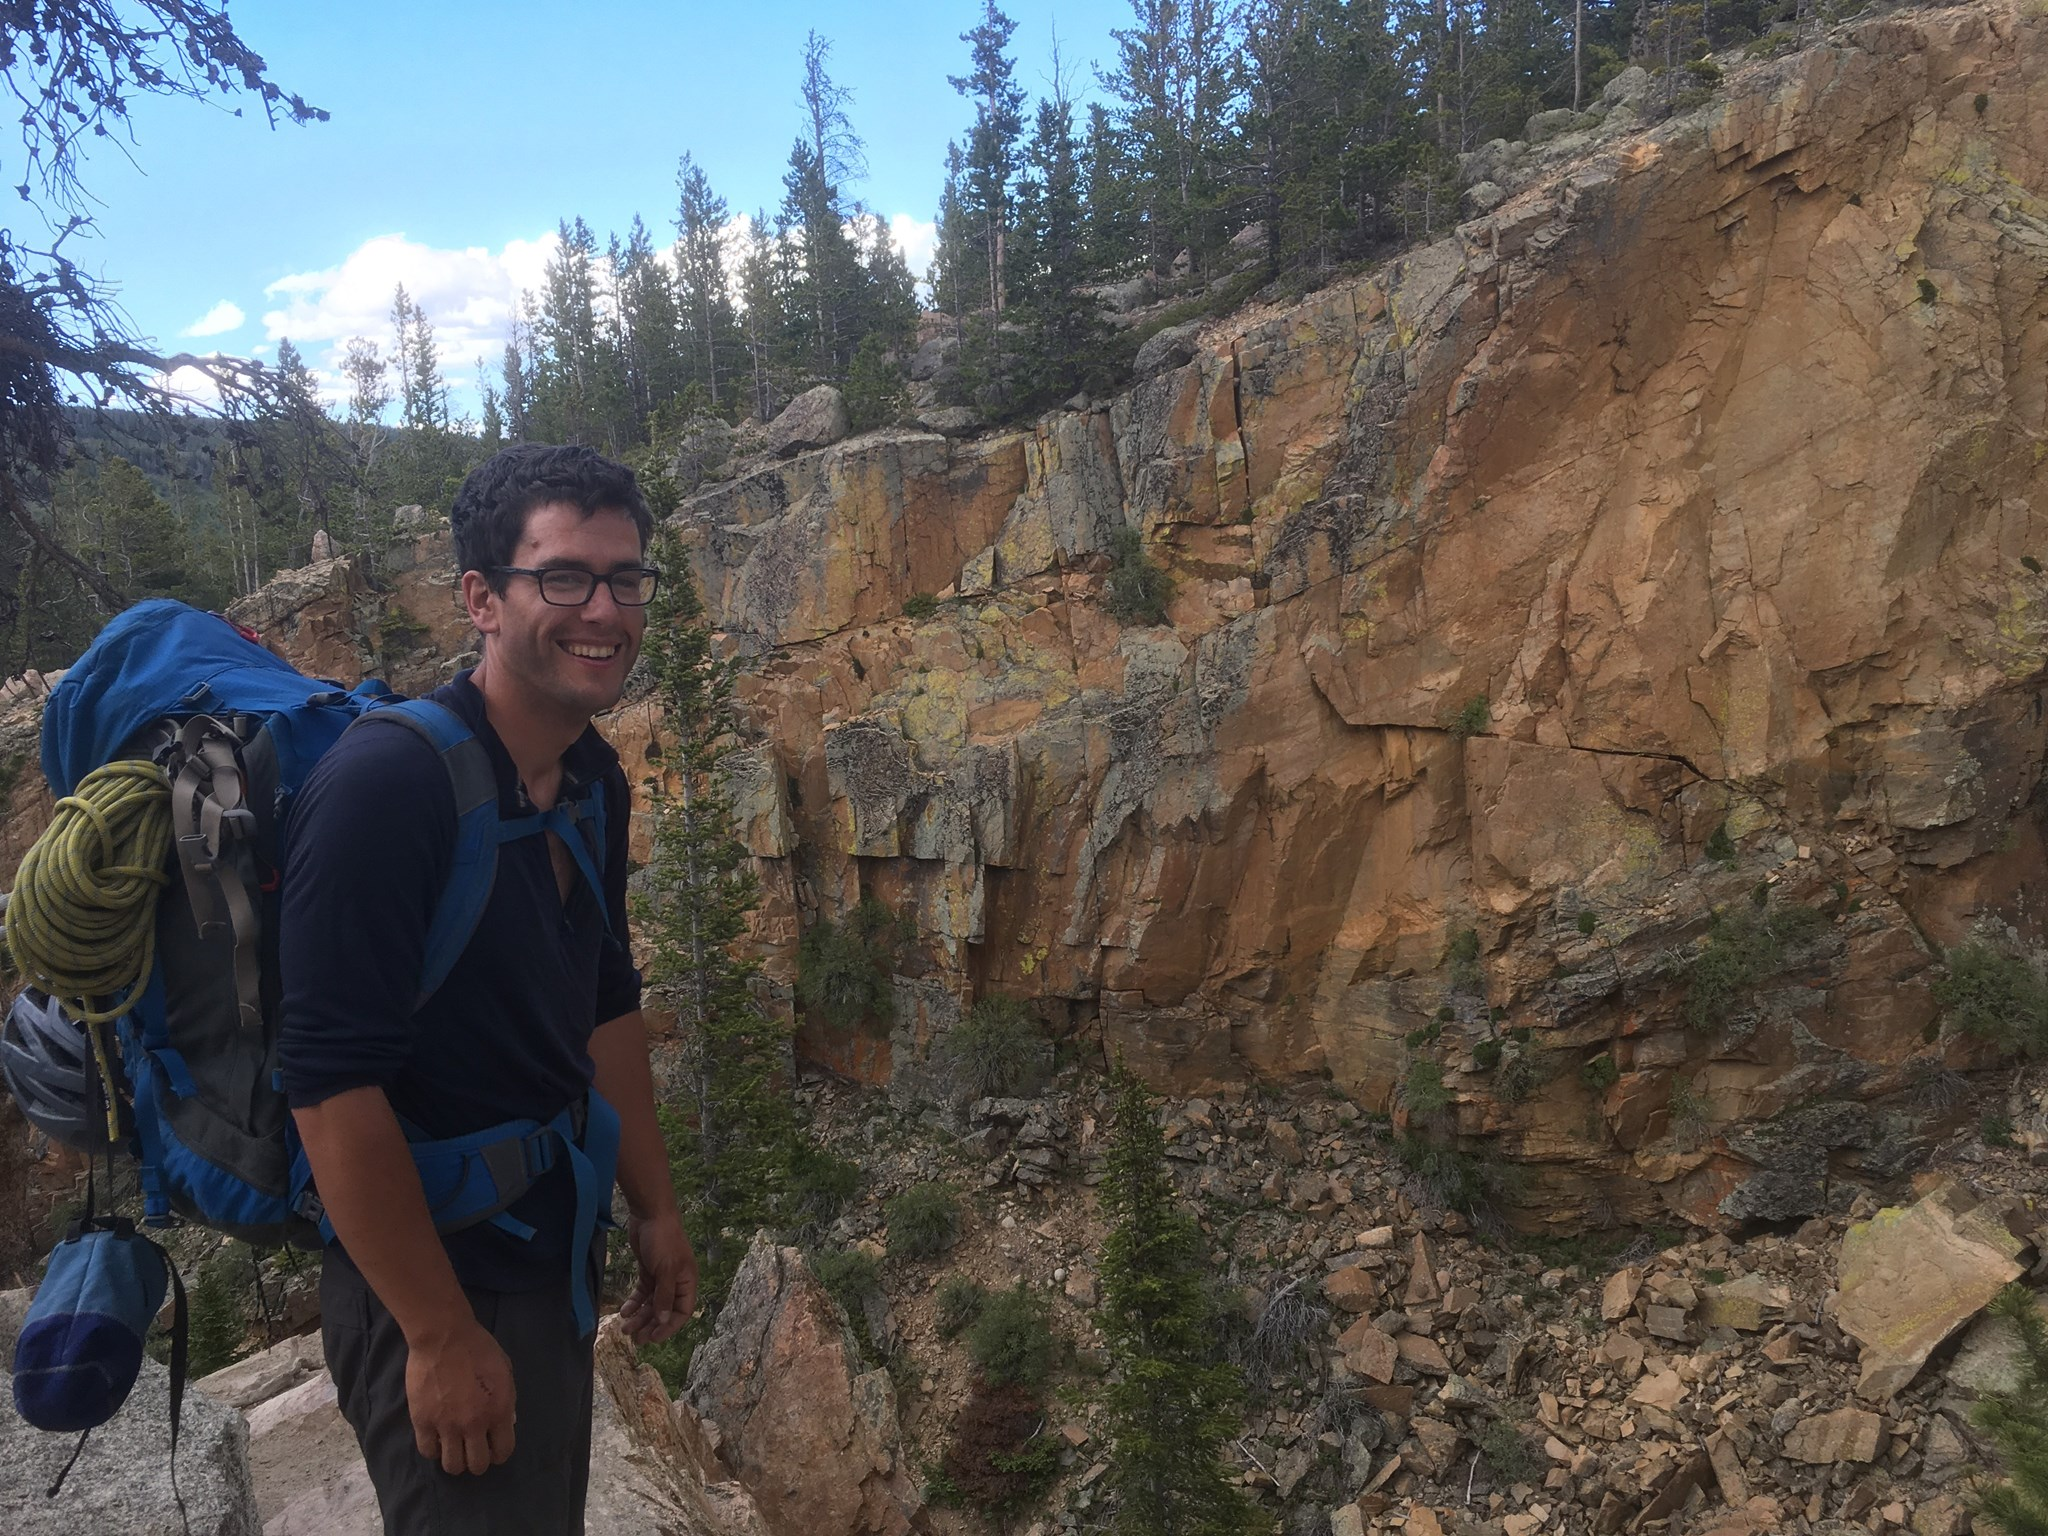 Marco by some waterfall feature in RMNP